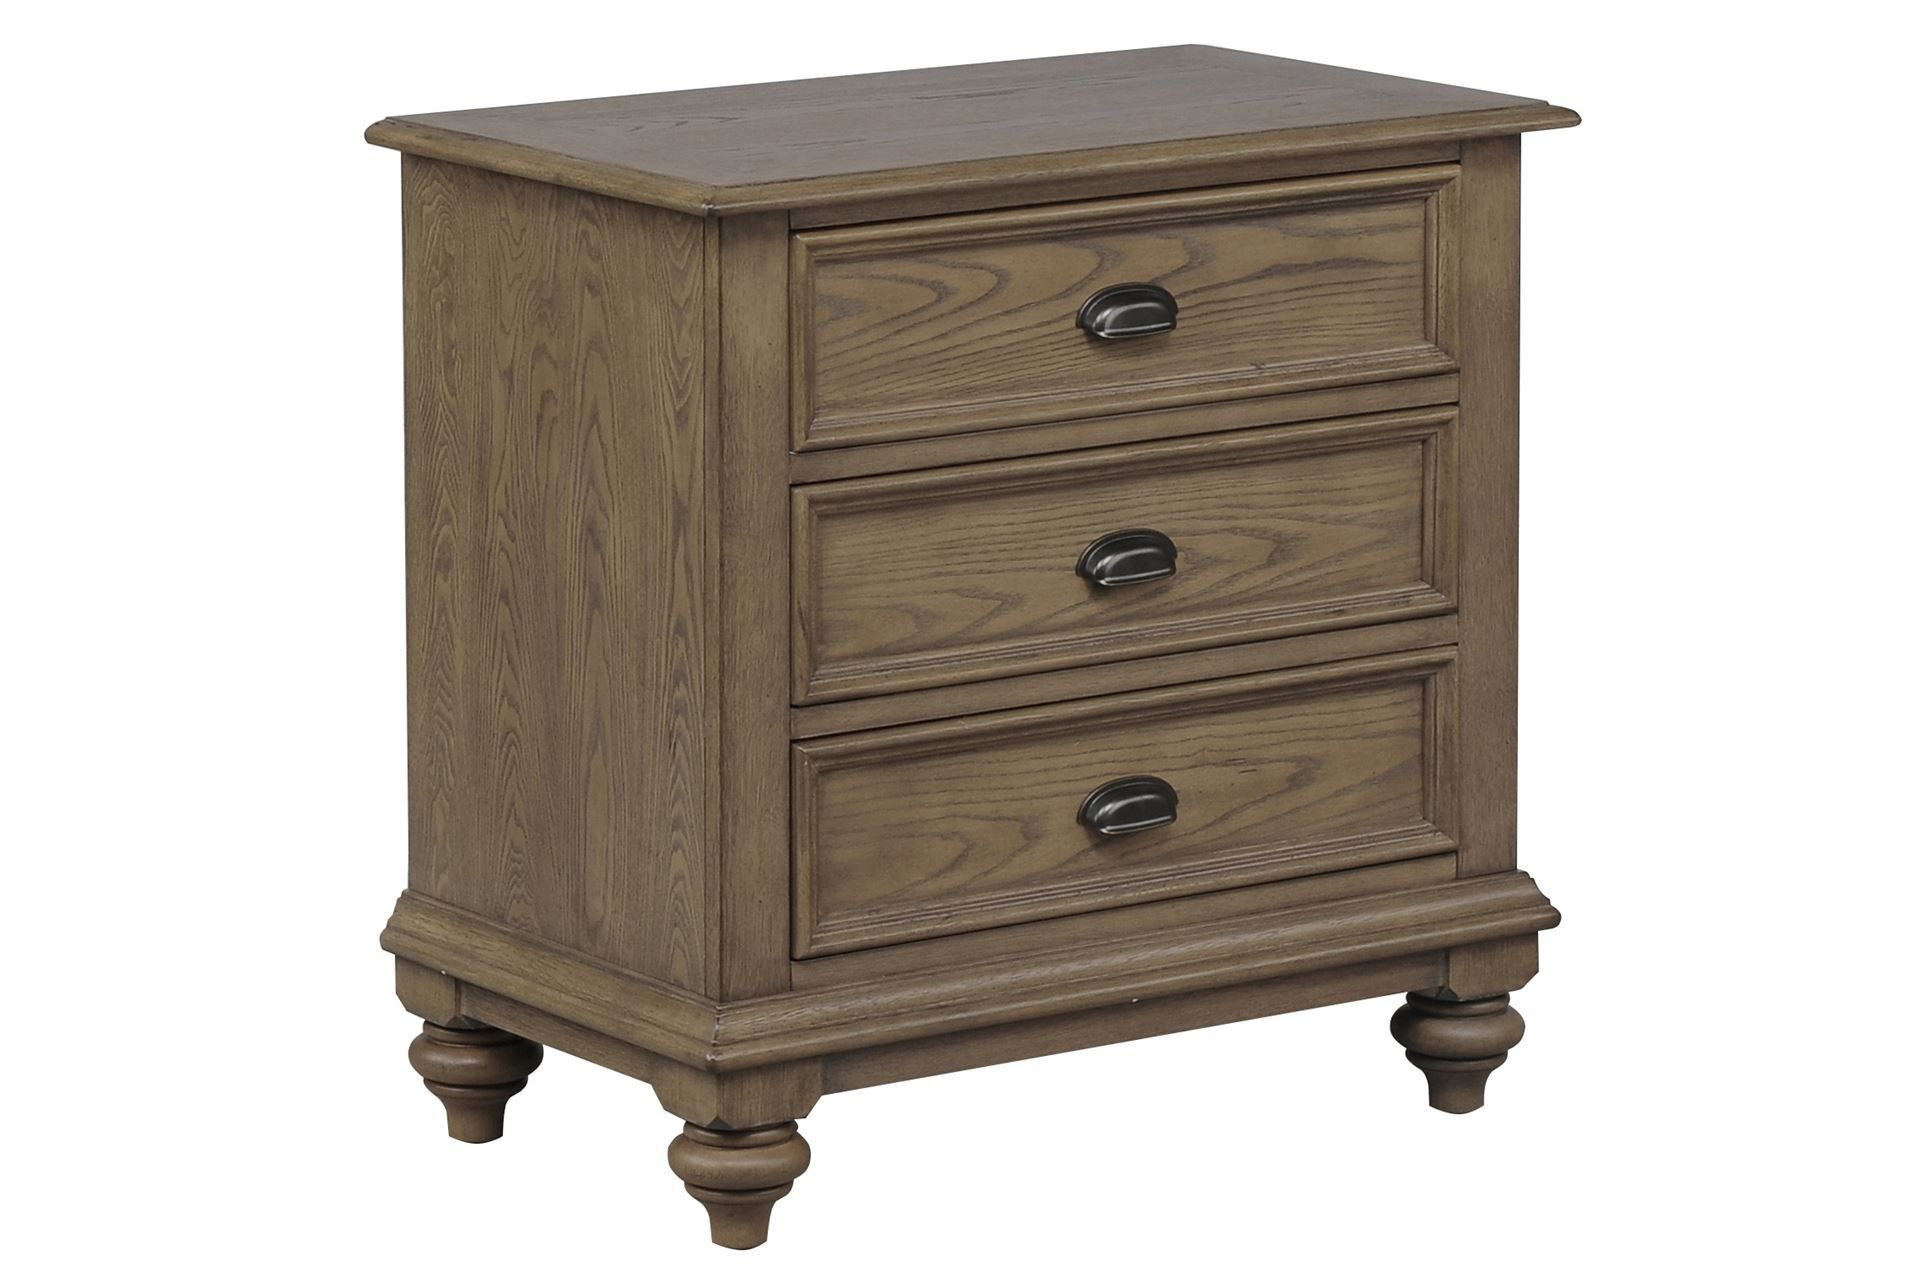 Sutton Ii Nightstand 2 Drawer Nightstand Drawer Nightstand Nightstand